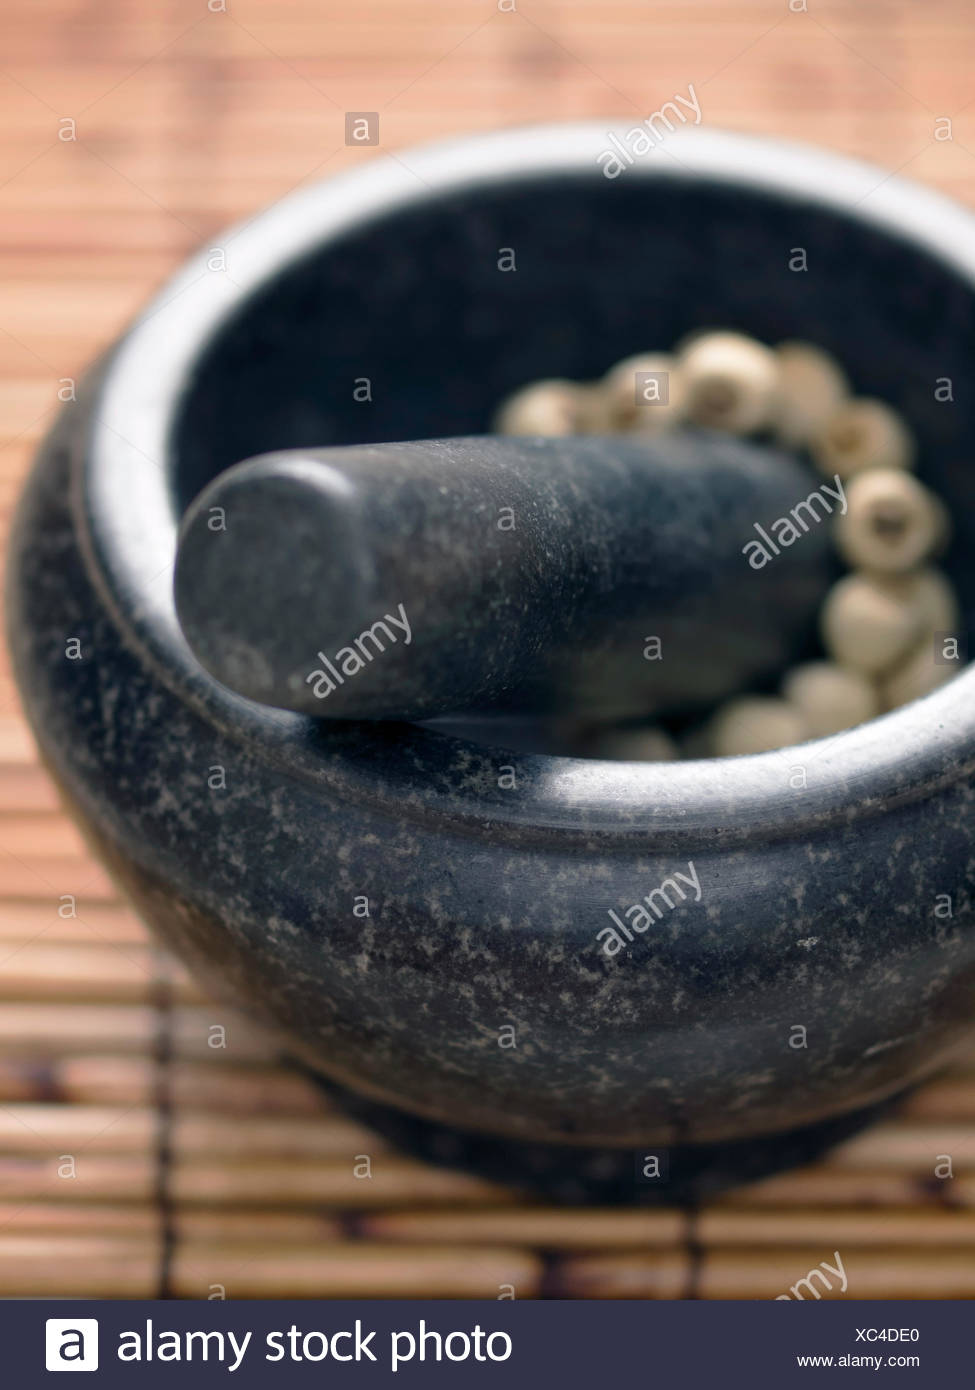 Asian mortar and pestle apologise